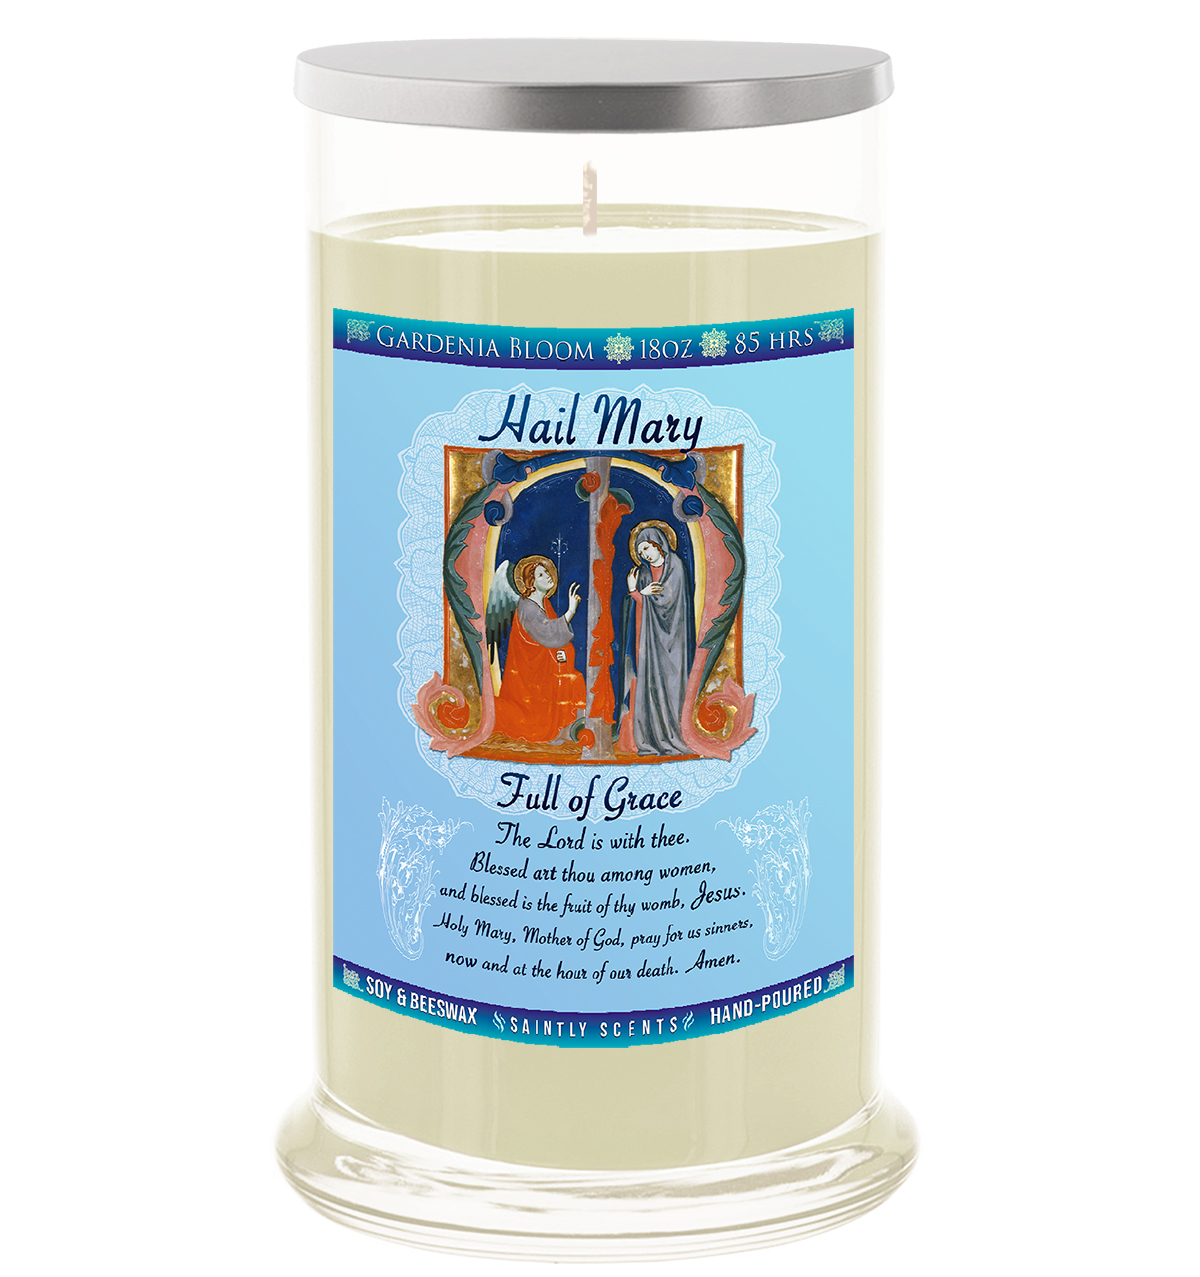 Hail Mary Scented Prayer Candle - Gardenia Bloom